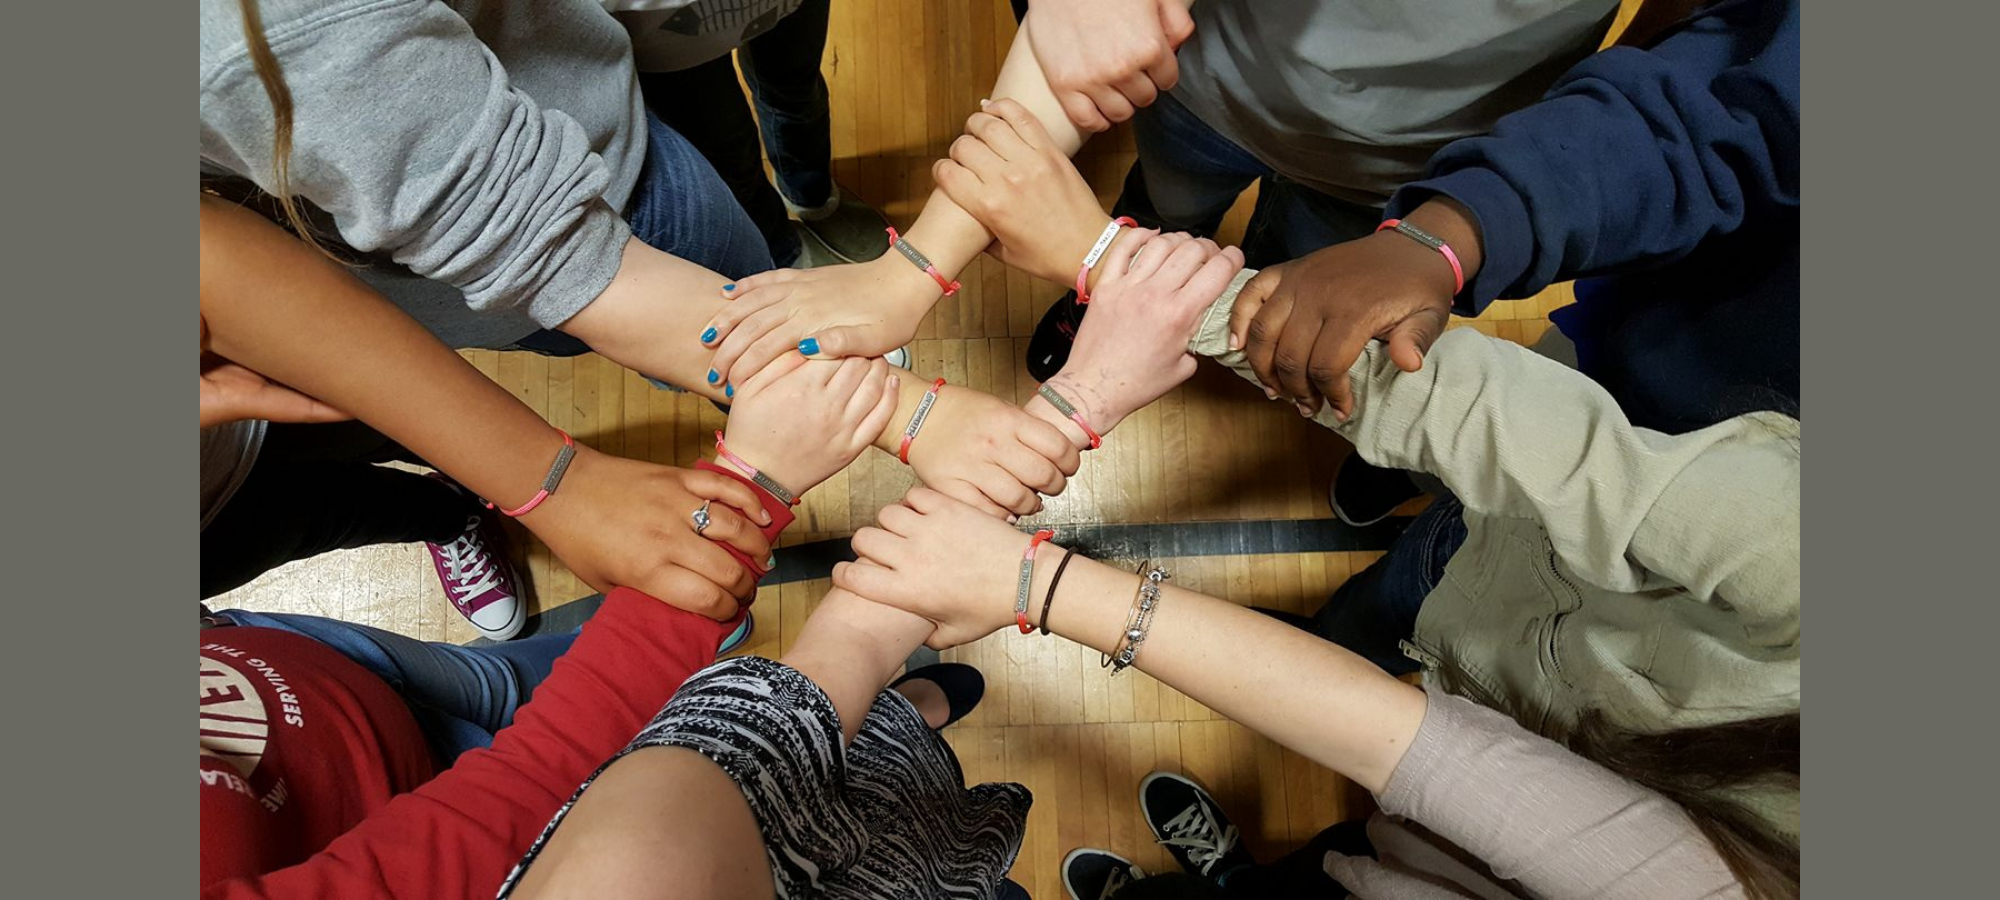 Images of arms with bracelets.